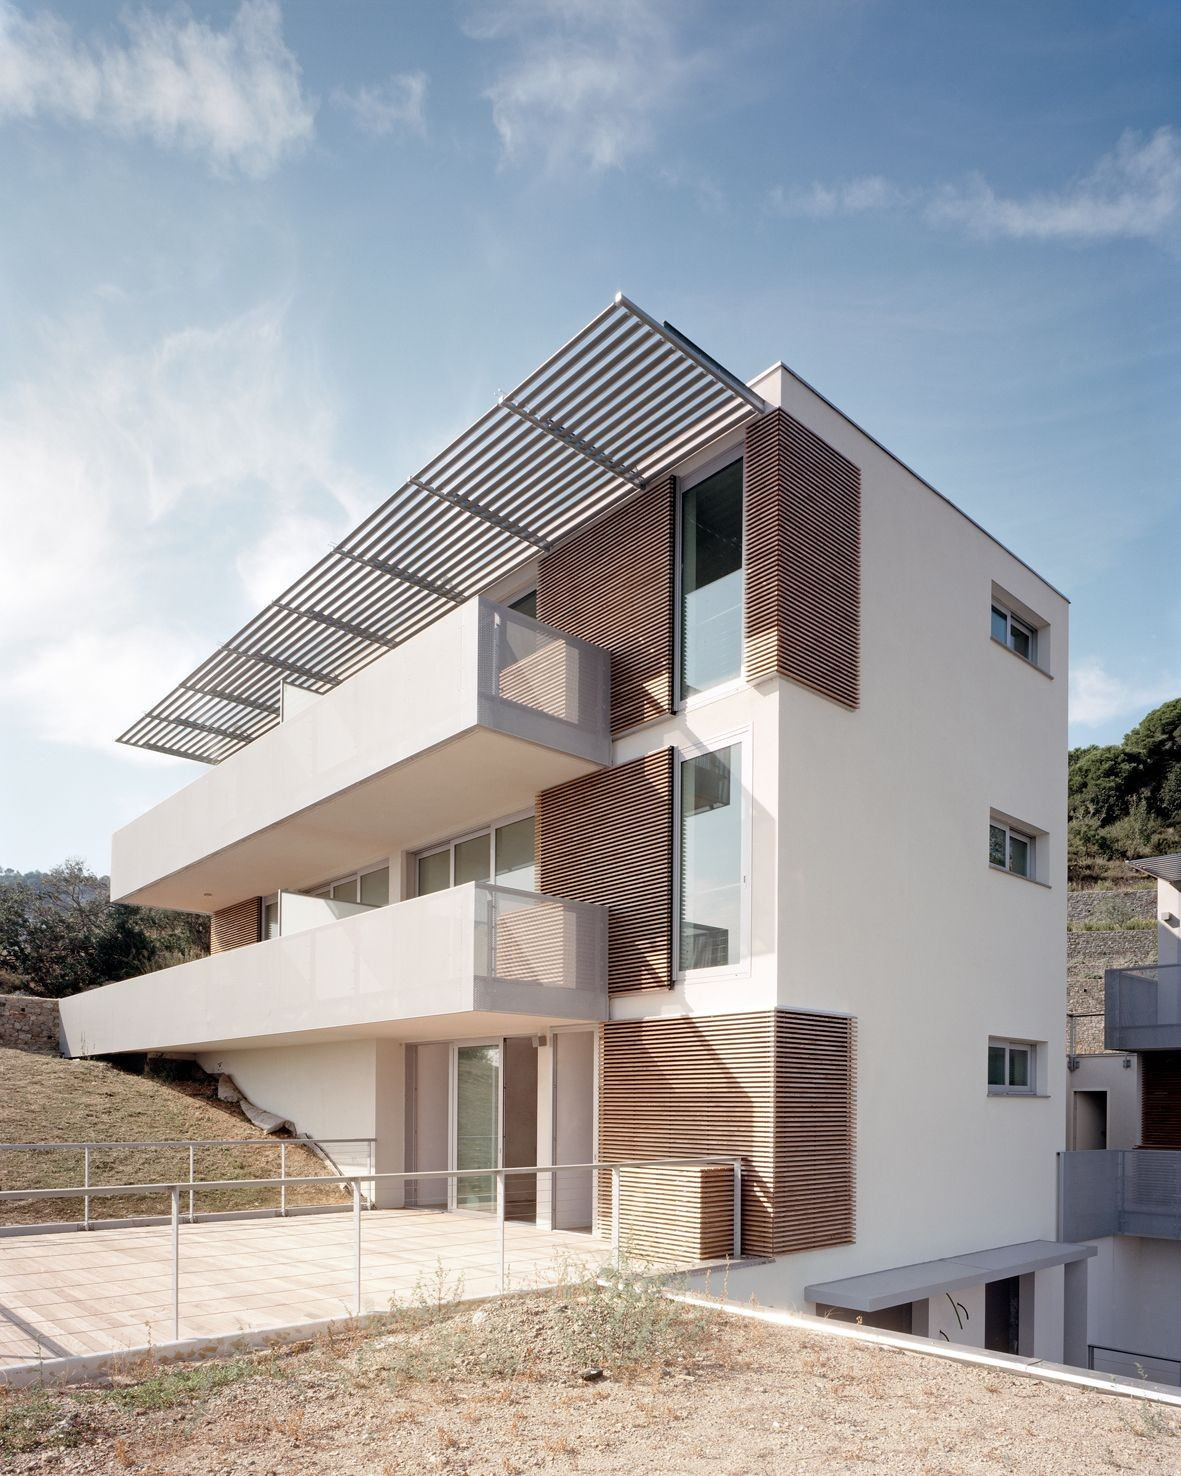 Dwellings in Spotorno / Ariu + Vallino Architects